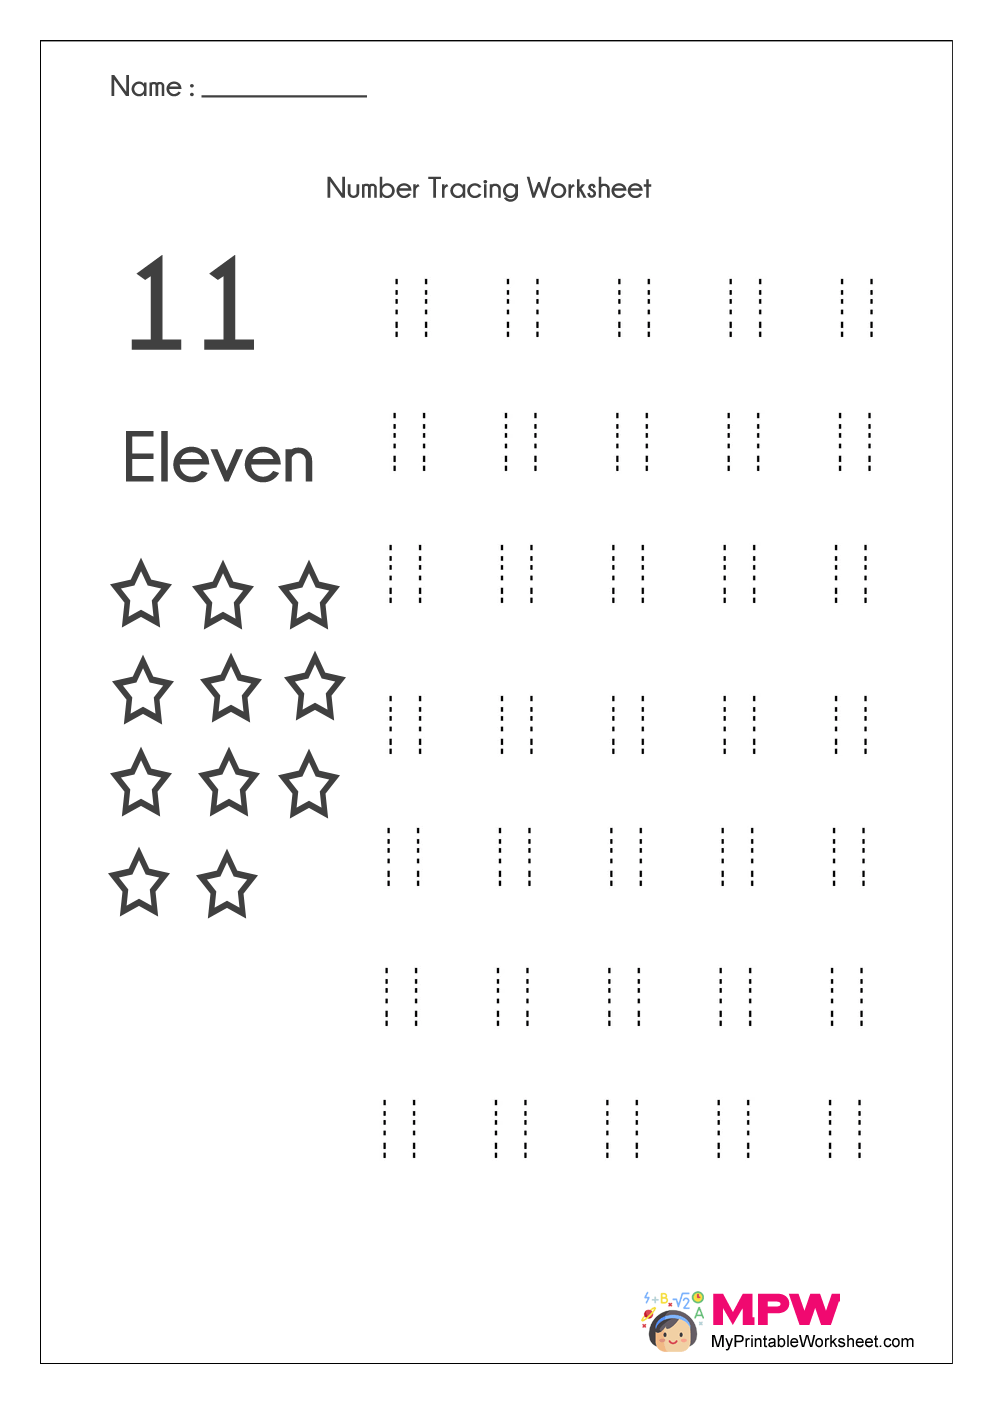 Number Tracing Worksheets 1-20, Dotted Line Number Tracing